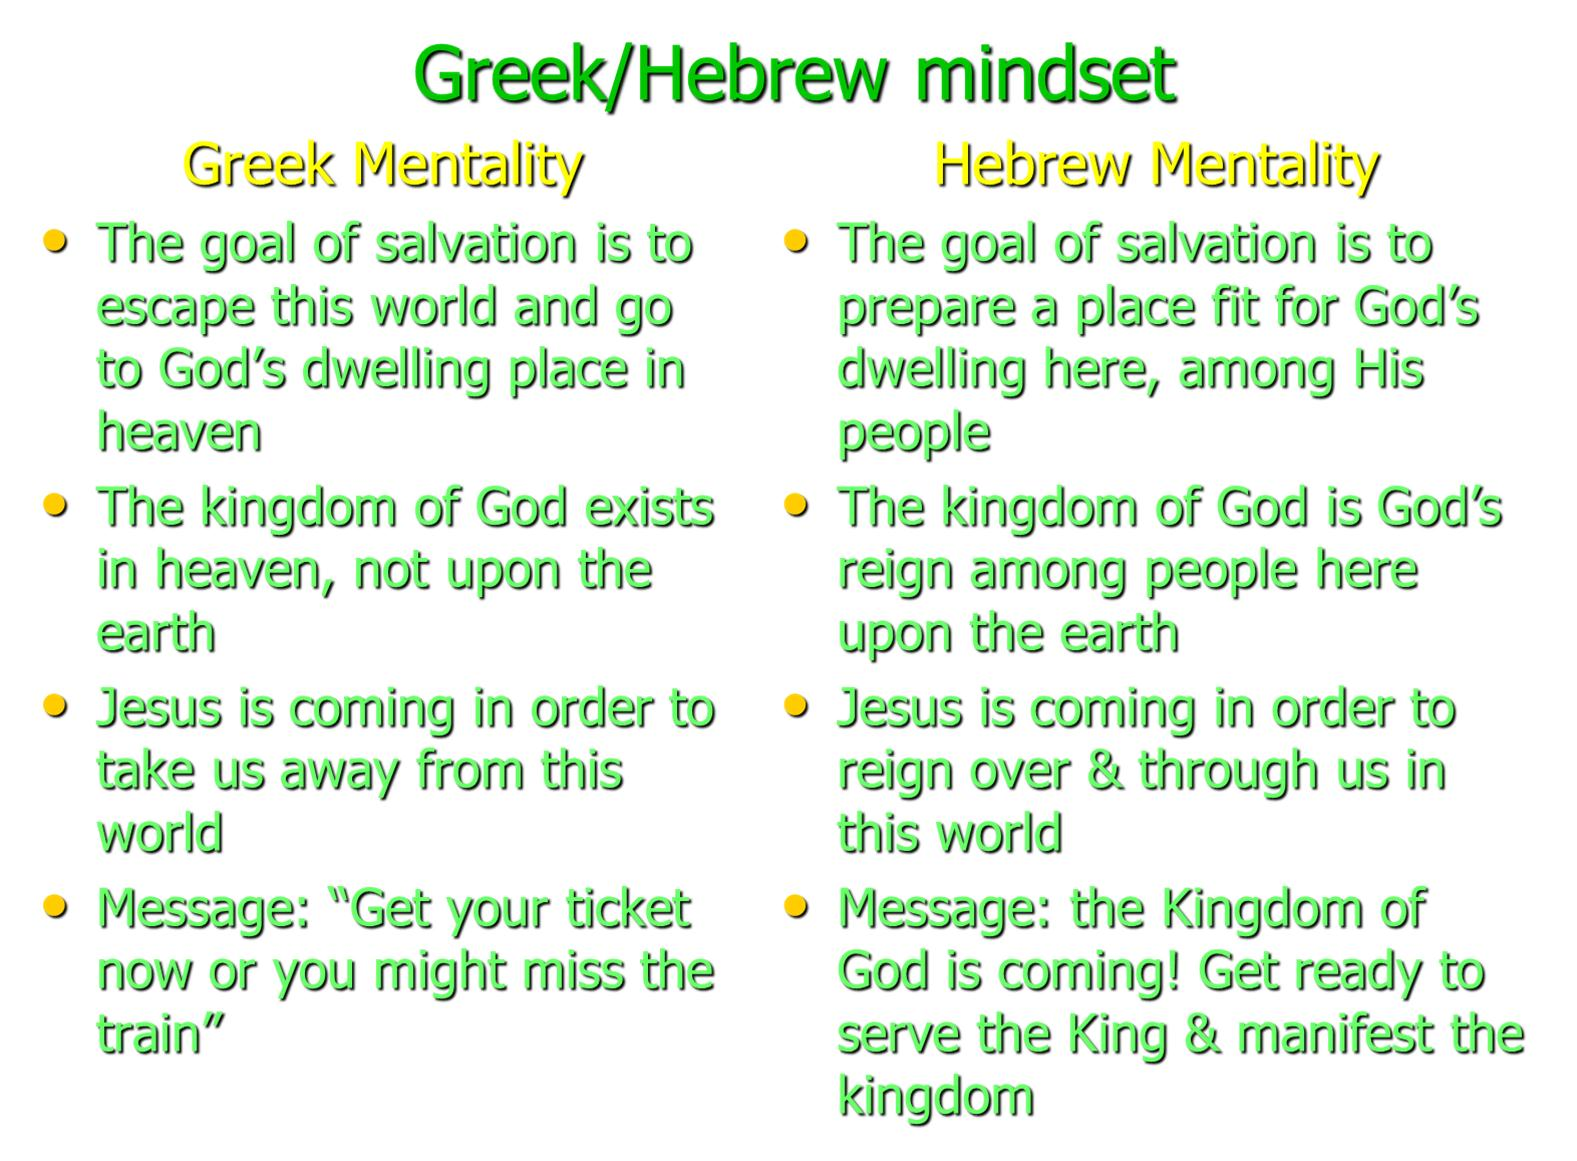 Why do people tend not to read the Bible in Greek and Hebrew?